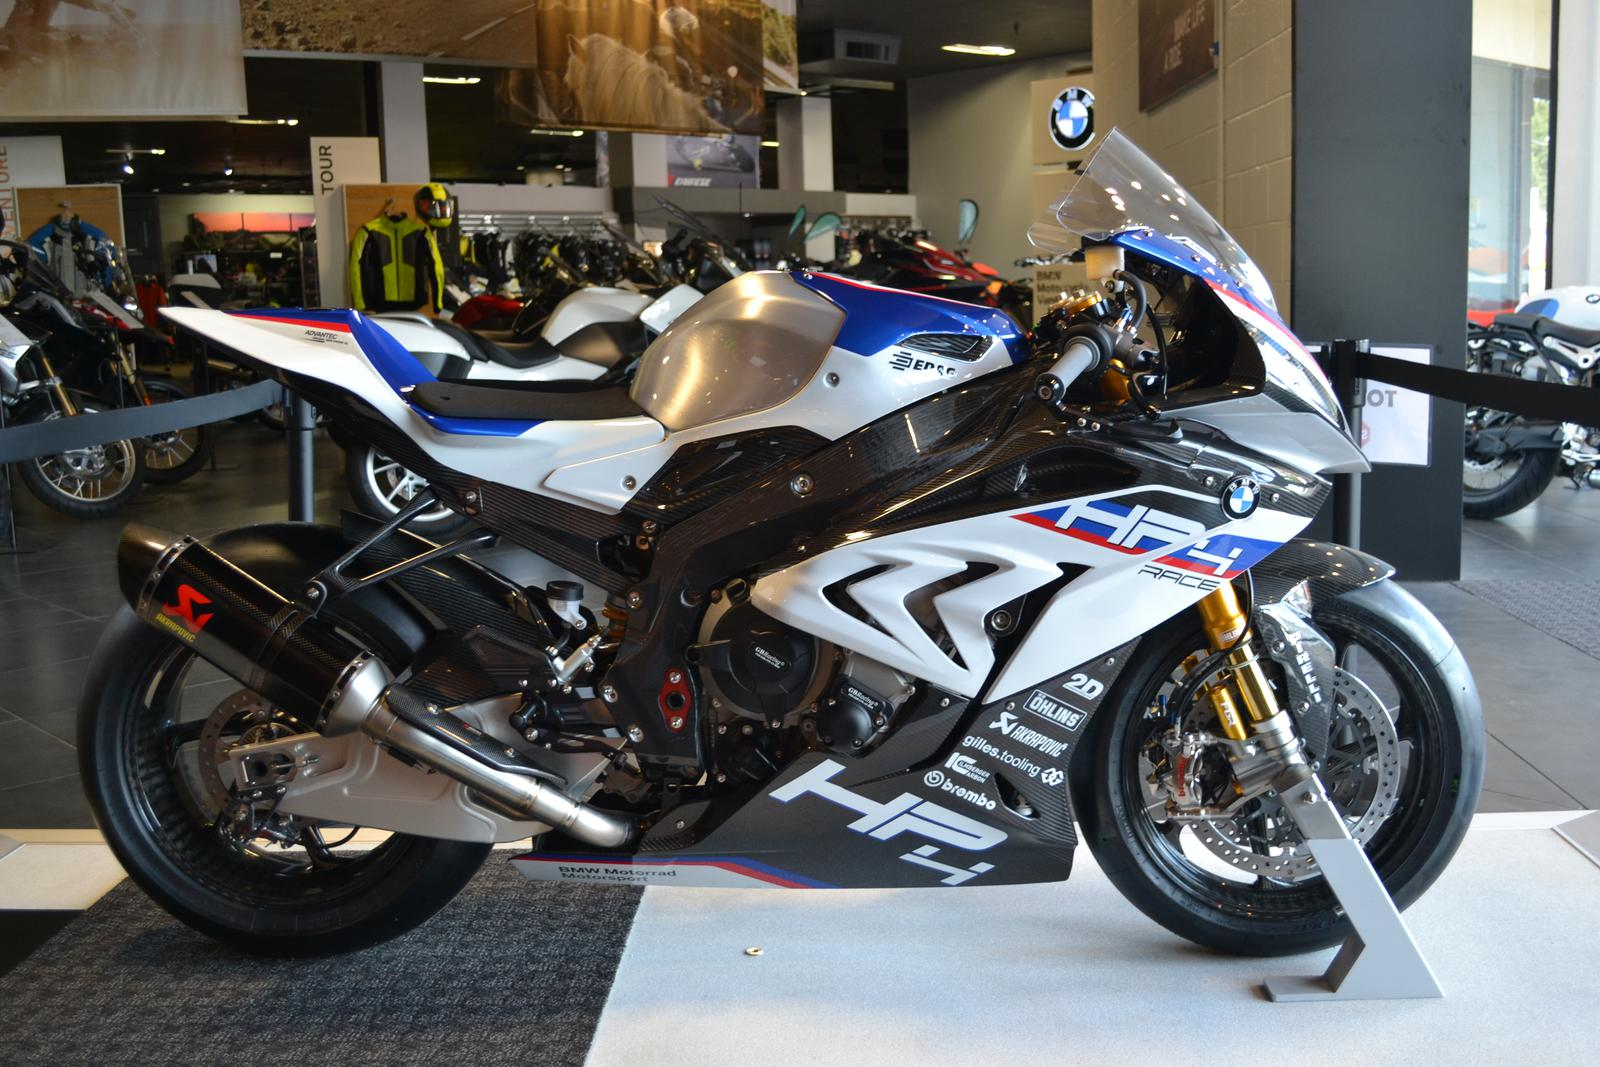 2018 BMW HP4 Race for sale in Vancouver, WA | Pro Caliber Vancouver ...